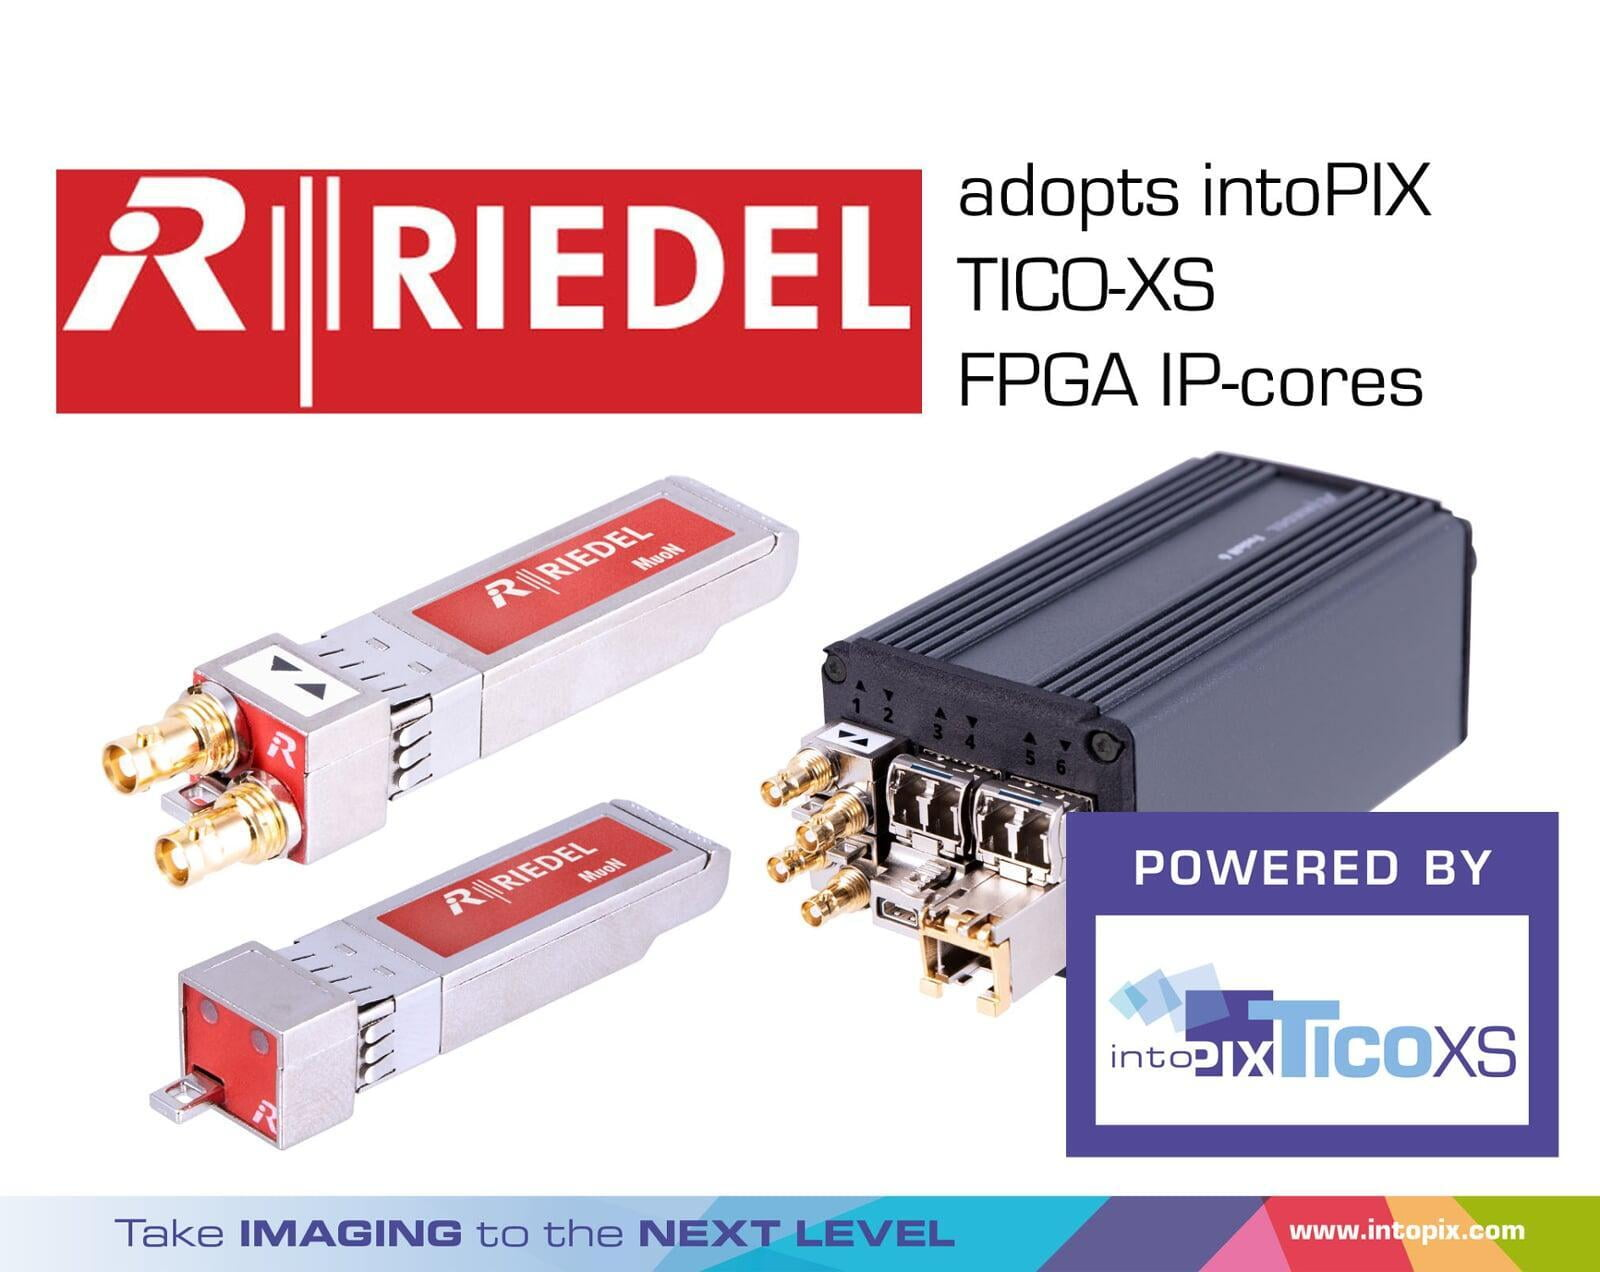 Riedel has integrated the new TICO-XS solution